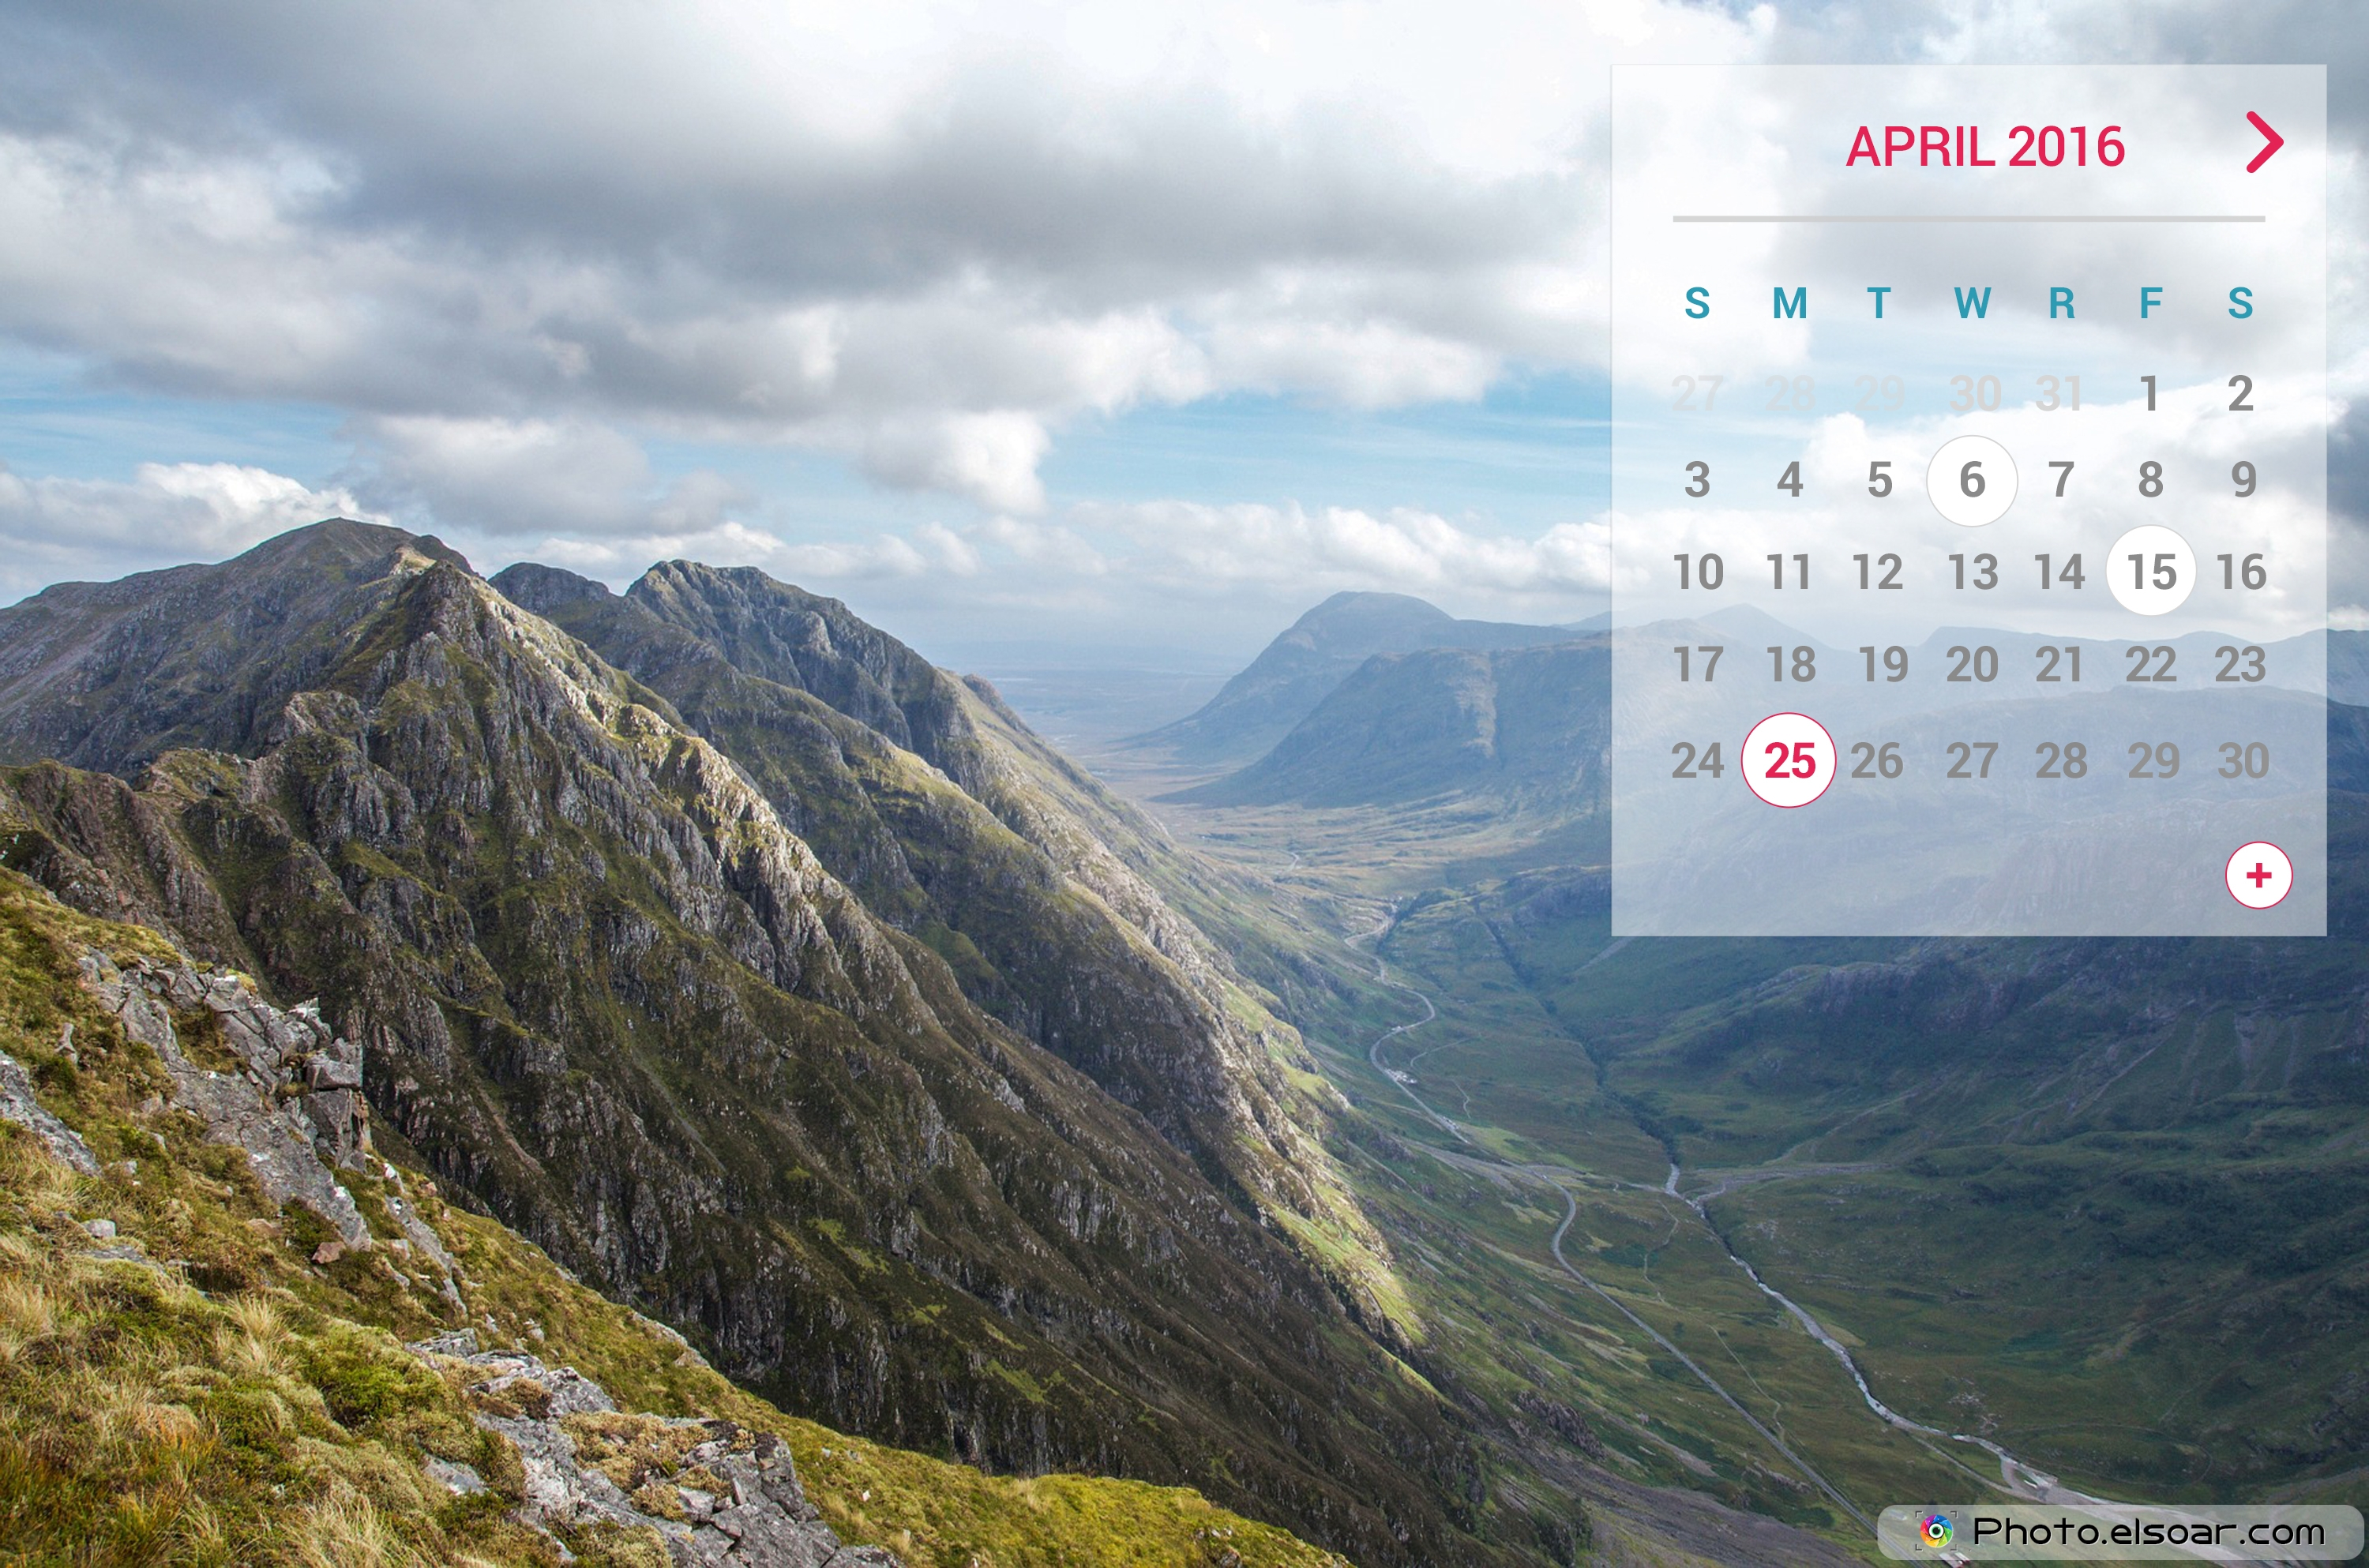 April 2016 Calendar For With A The Mountains And Landscape 3000x1986